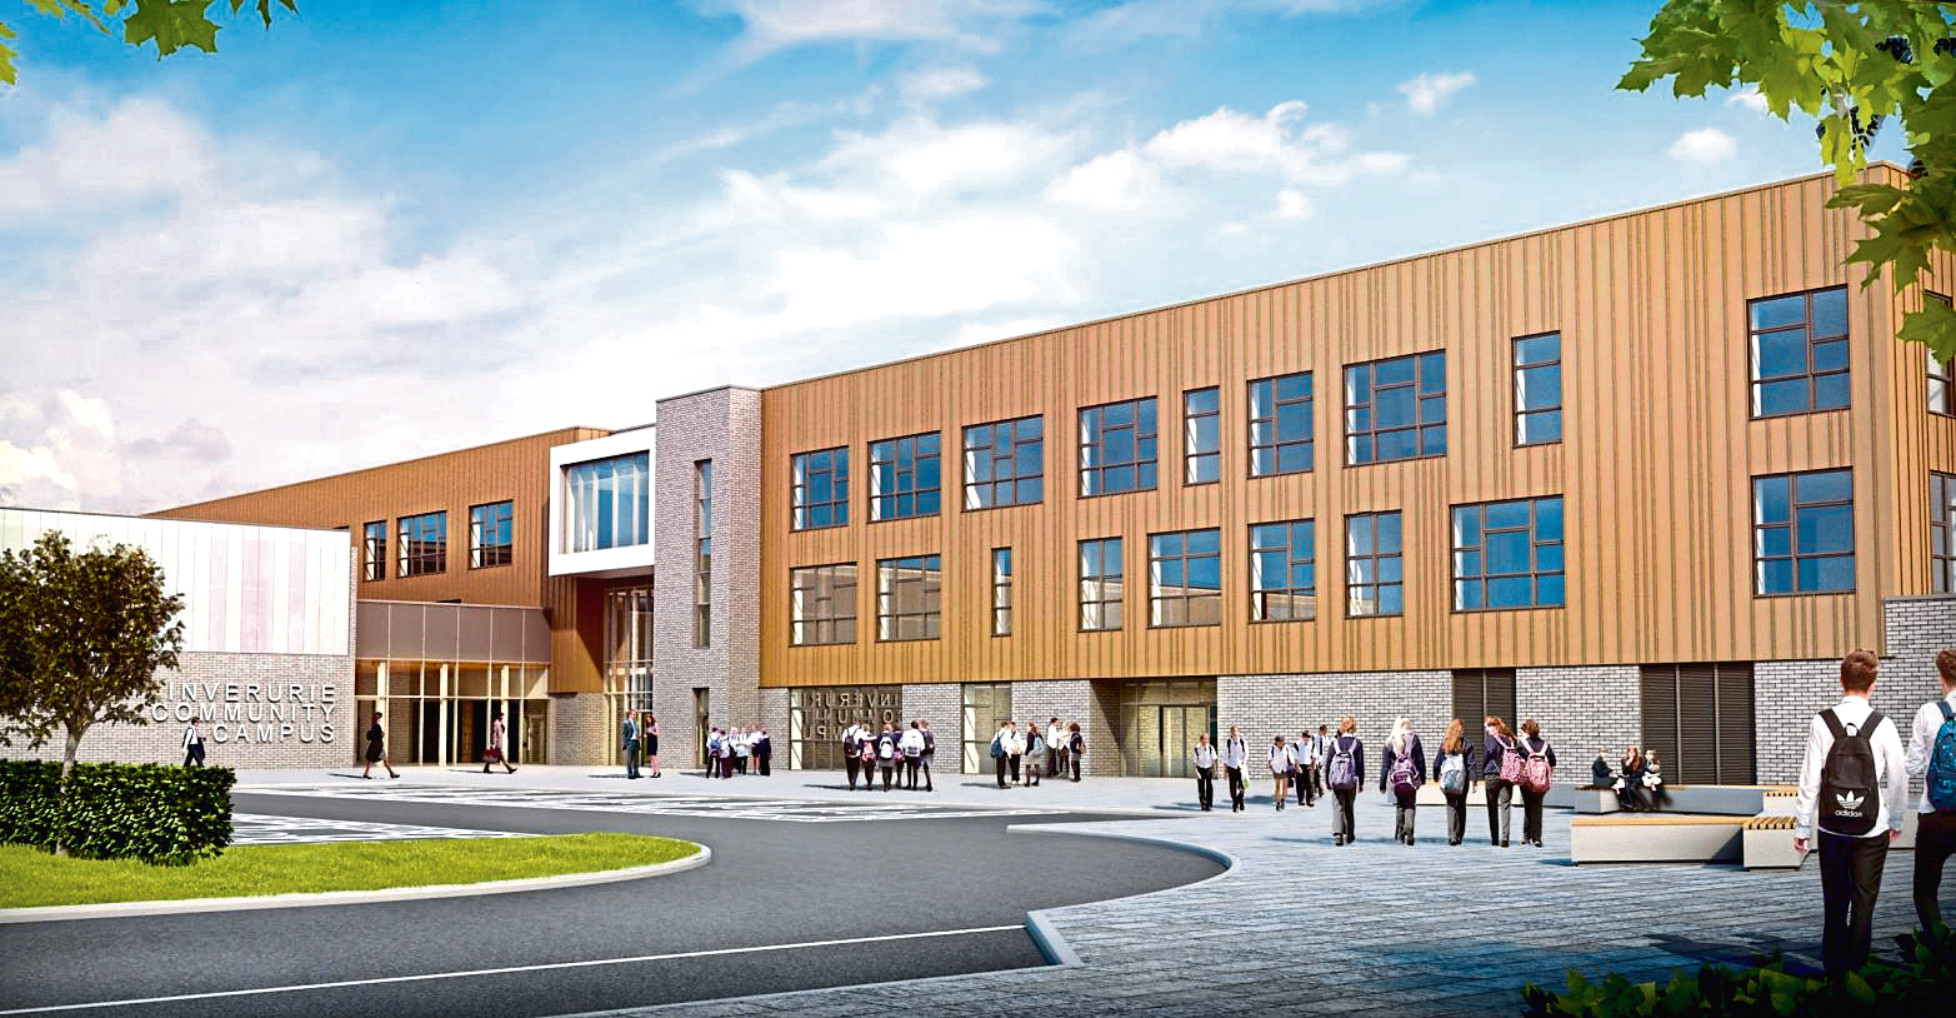 Artist's impression of the new Inverurie community campus.